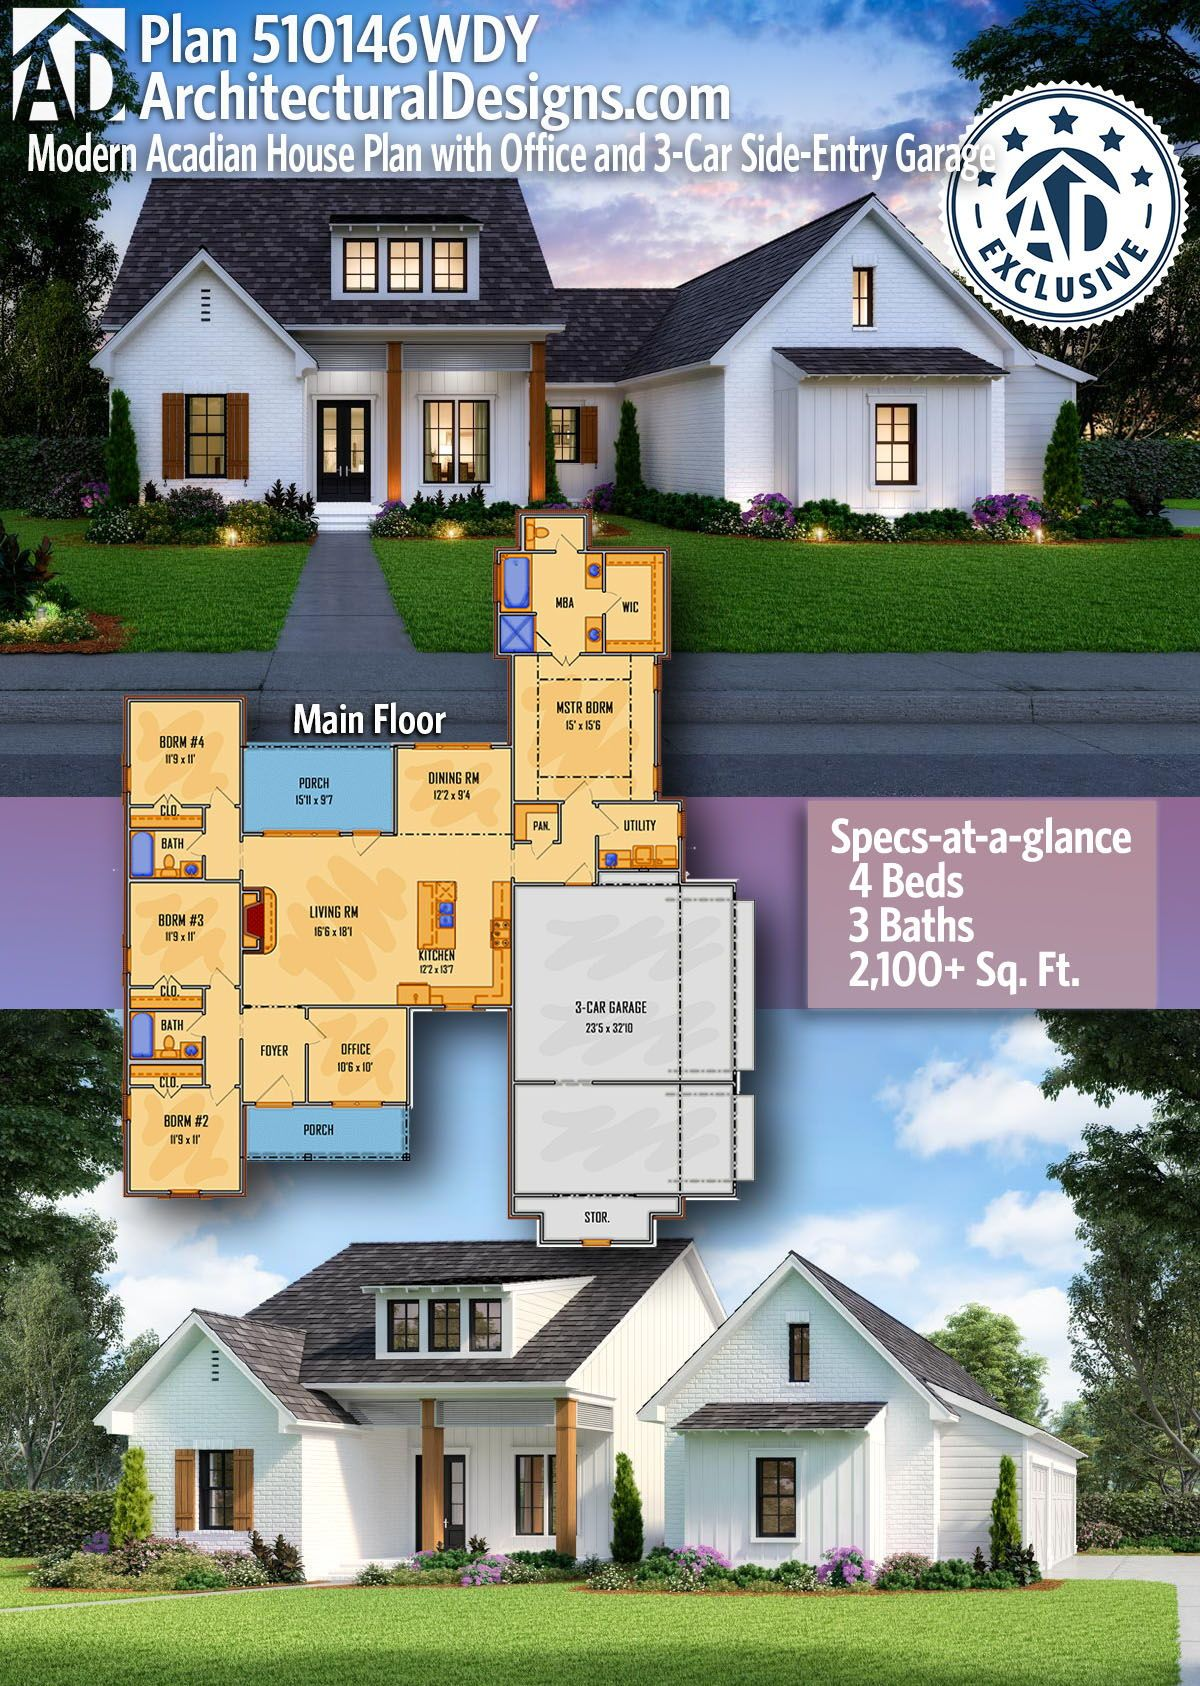 Plan 510146WDY: Modern Acadian House Plan with Office and ...